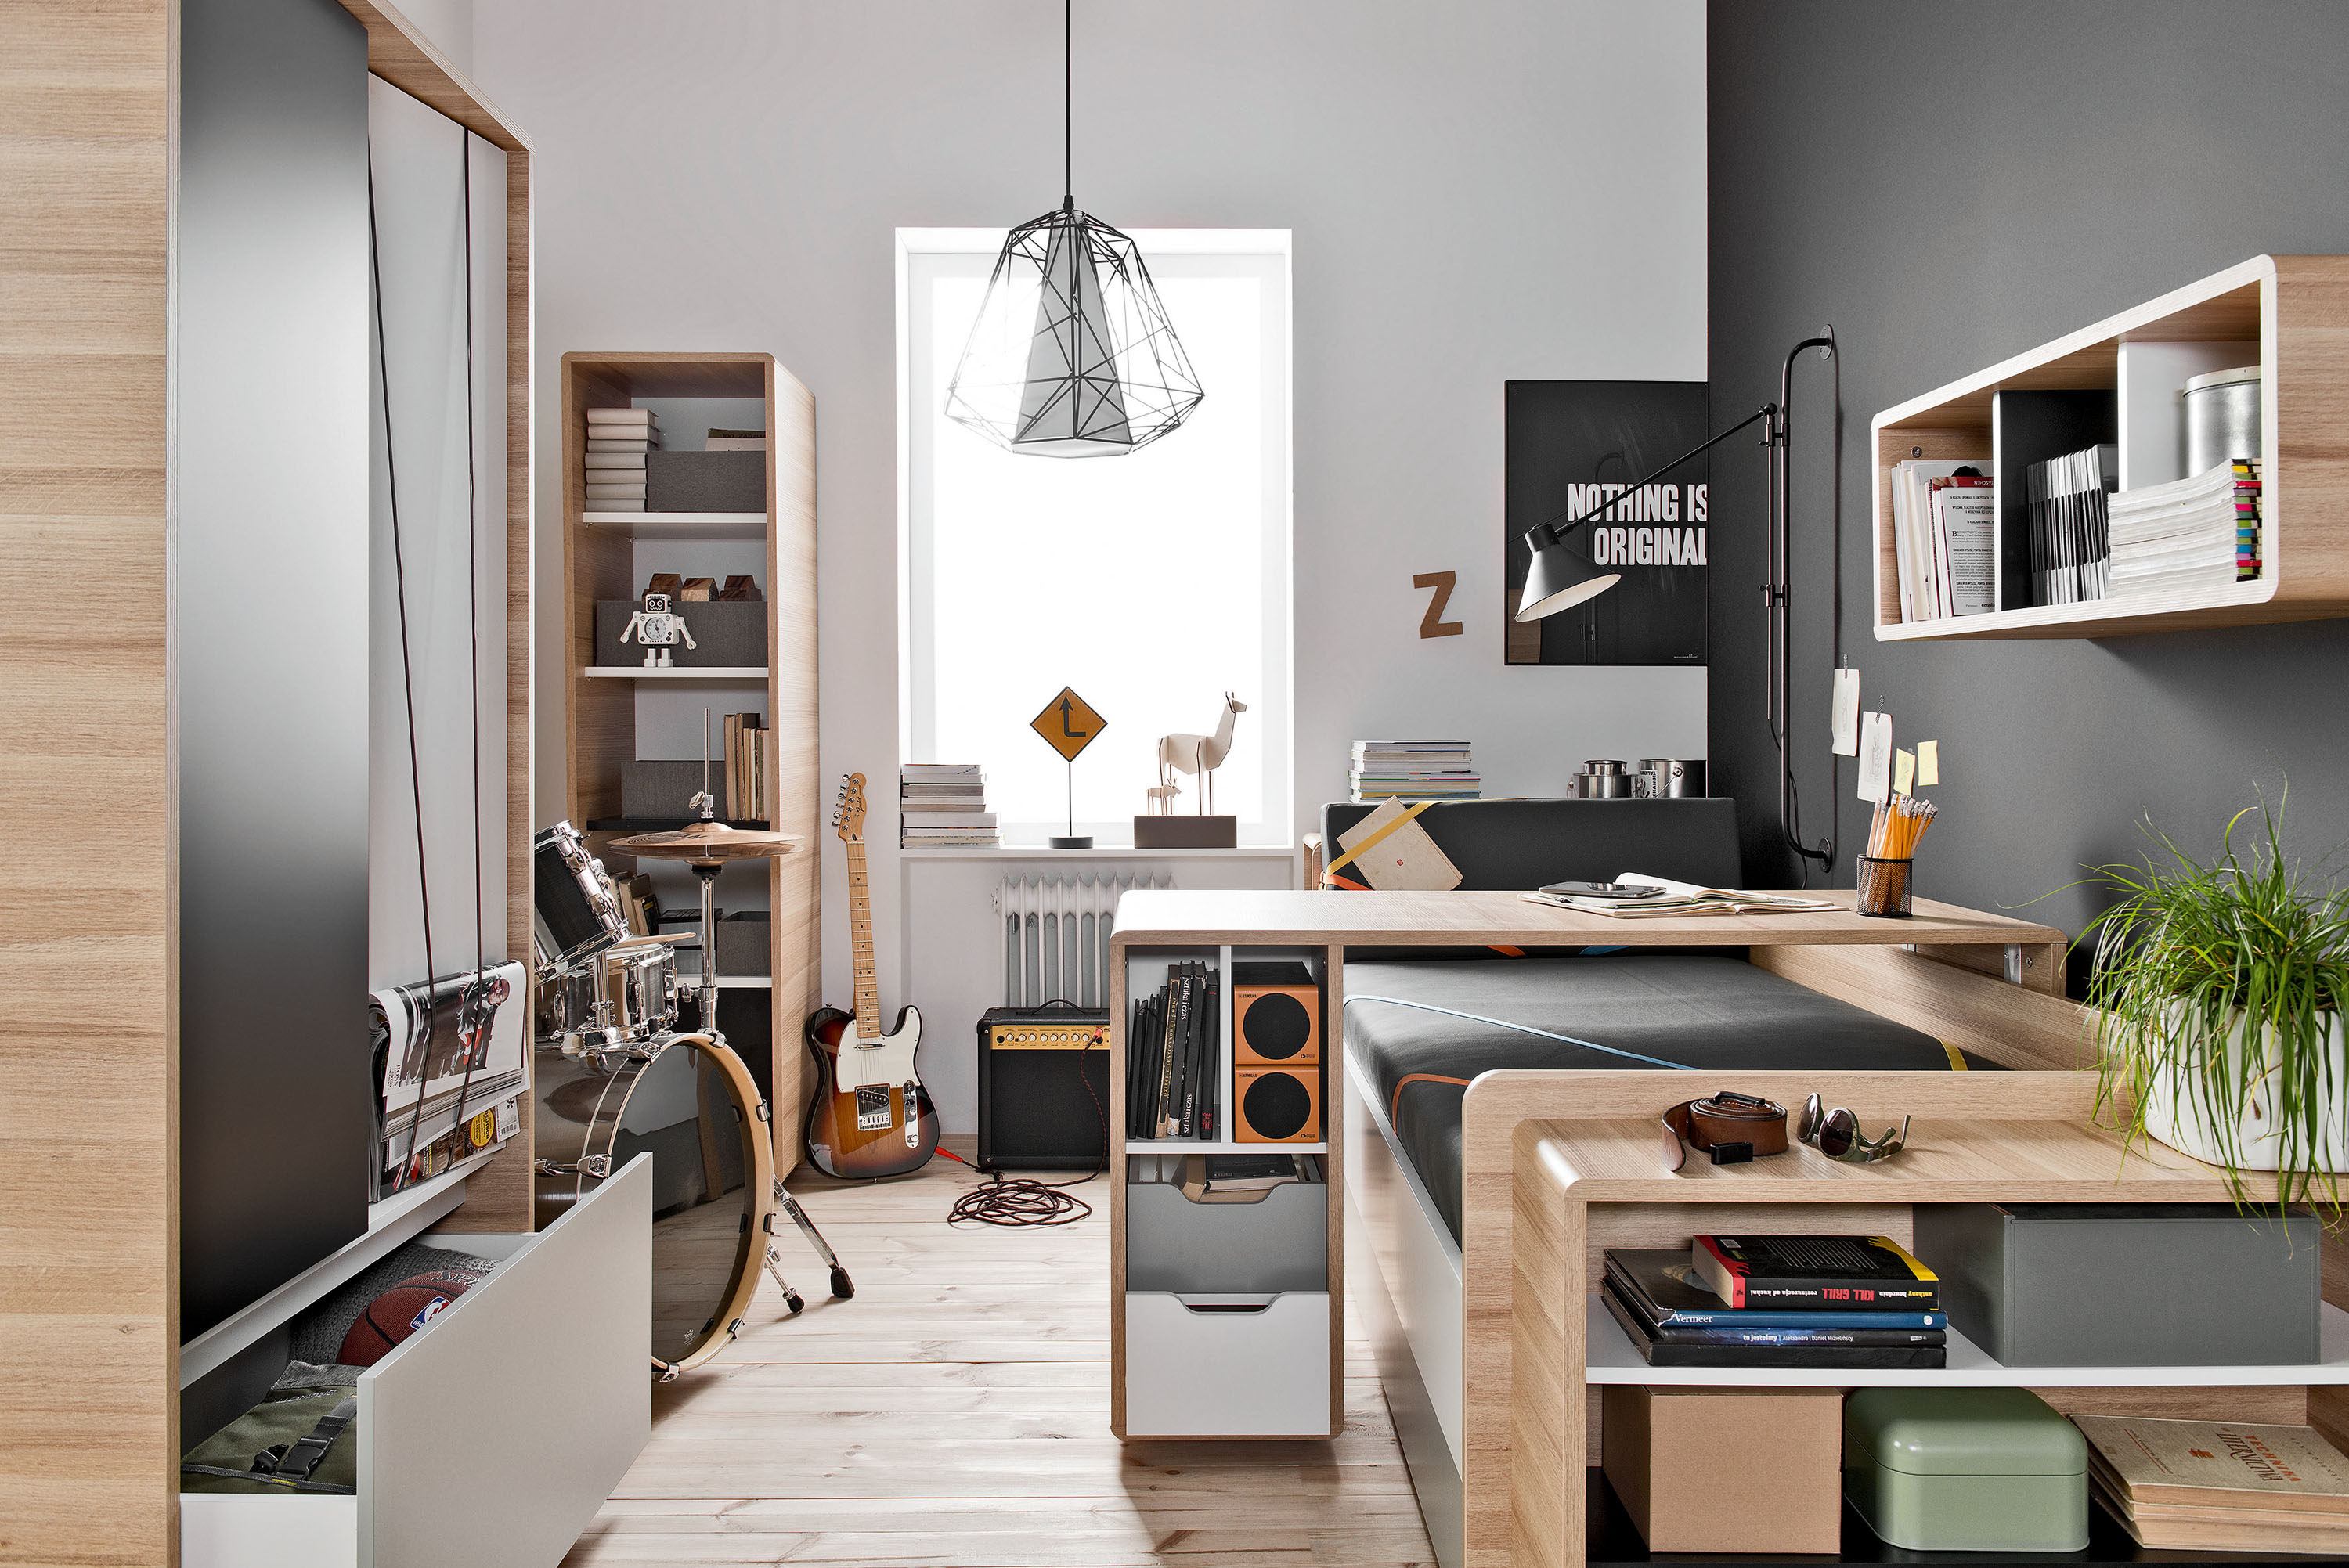 Teen bedroom ideas: 9 stylish ideas that you will both love